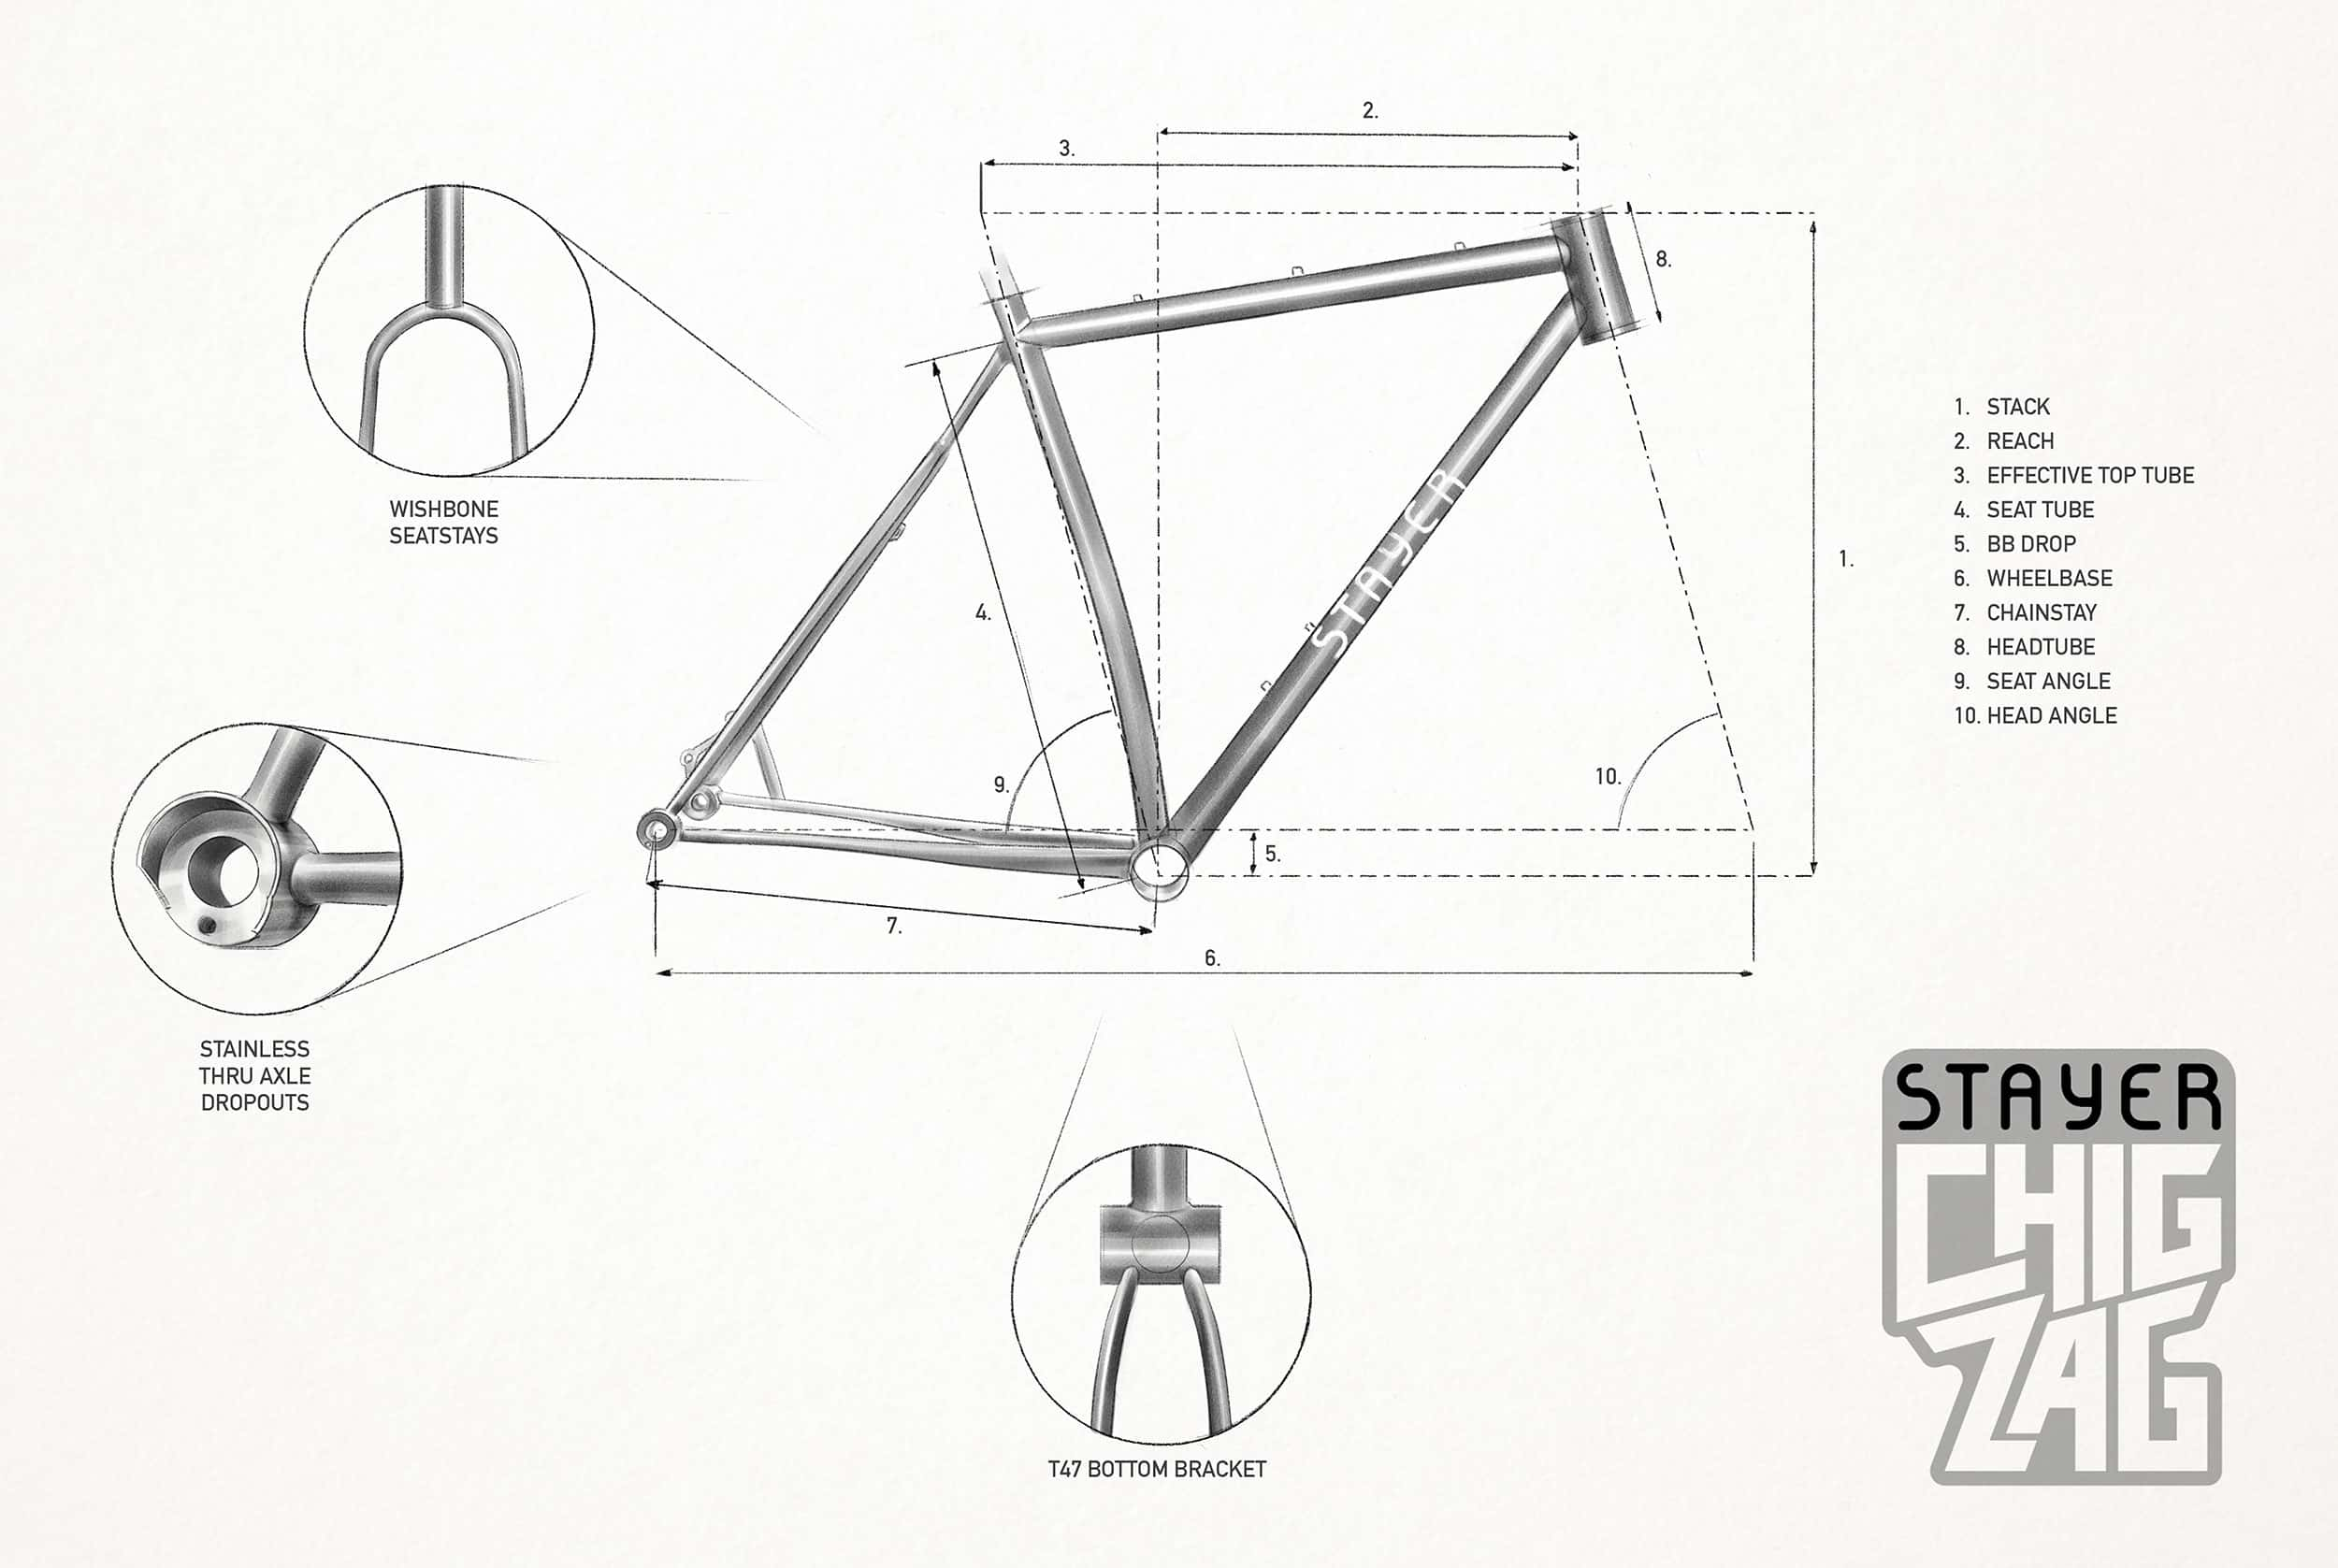 Stayer cycles Chigzag frameset